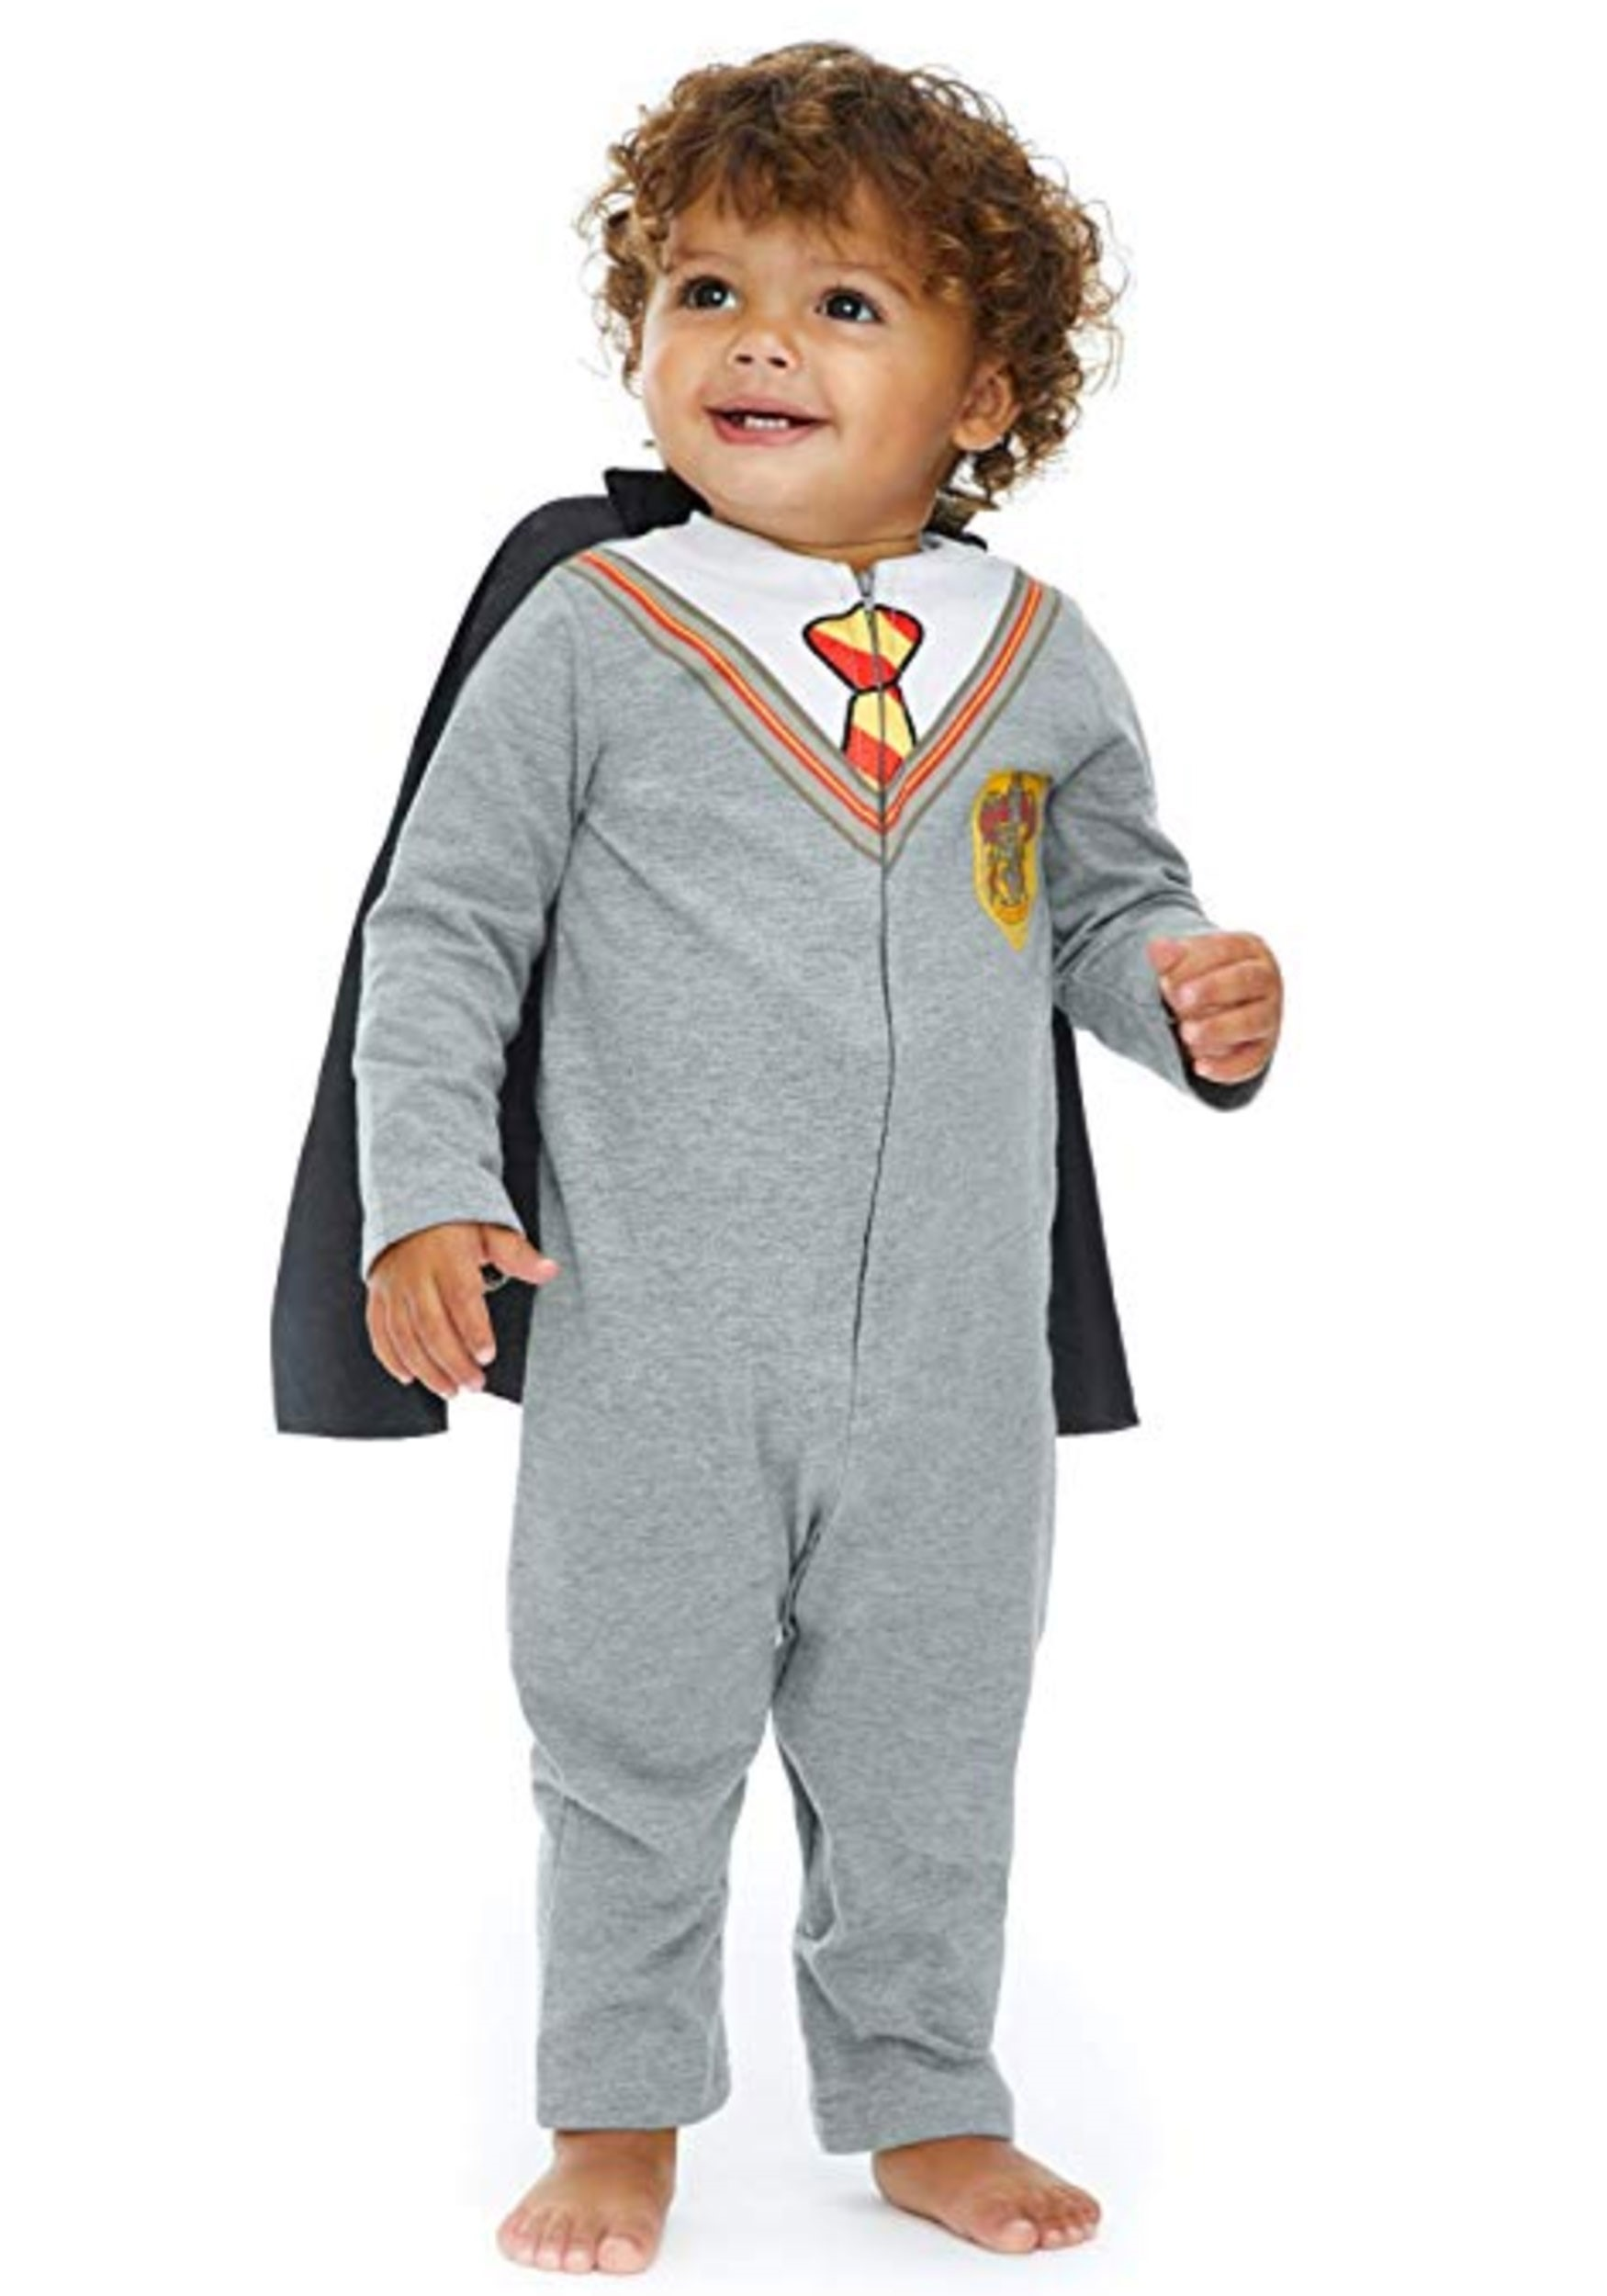 Infant Boys Harry Potter Costume Dressup Overalls